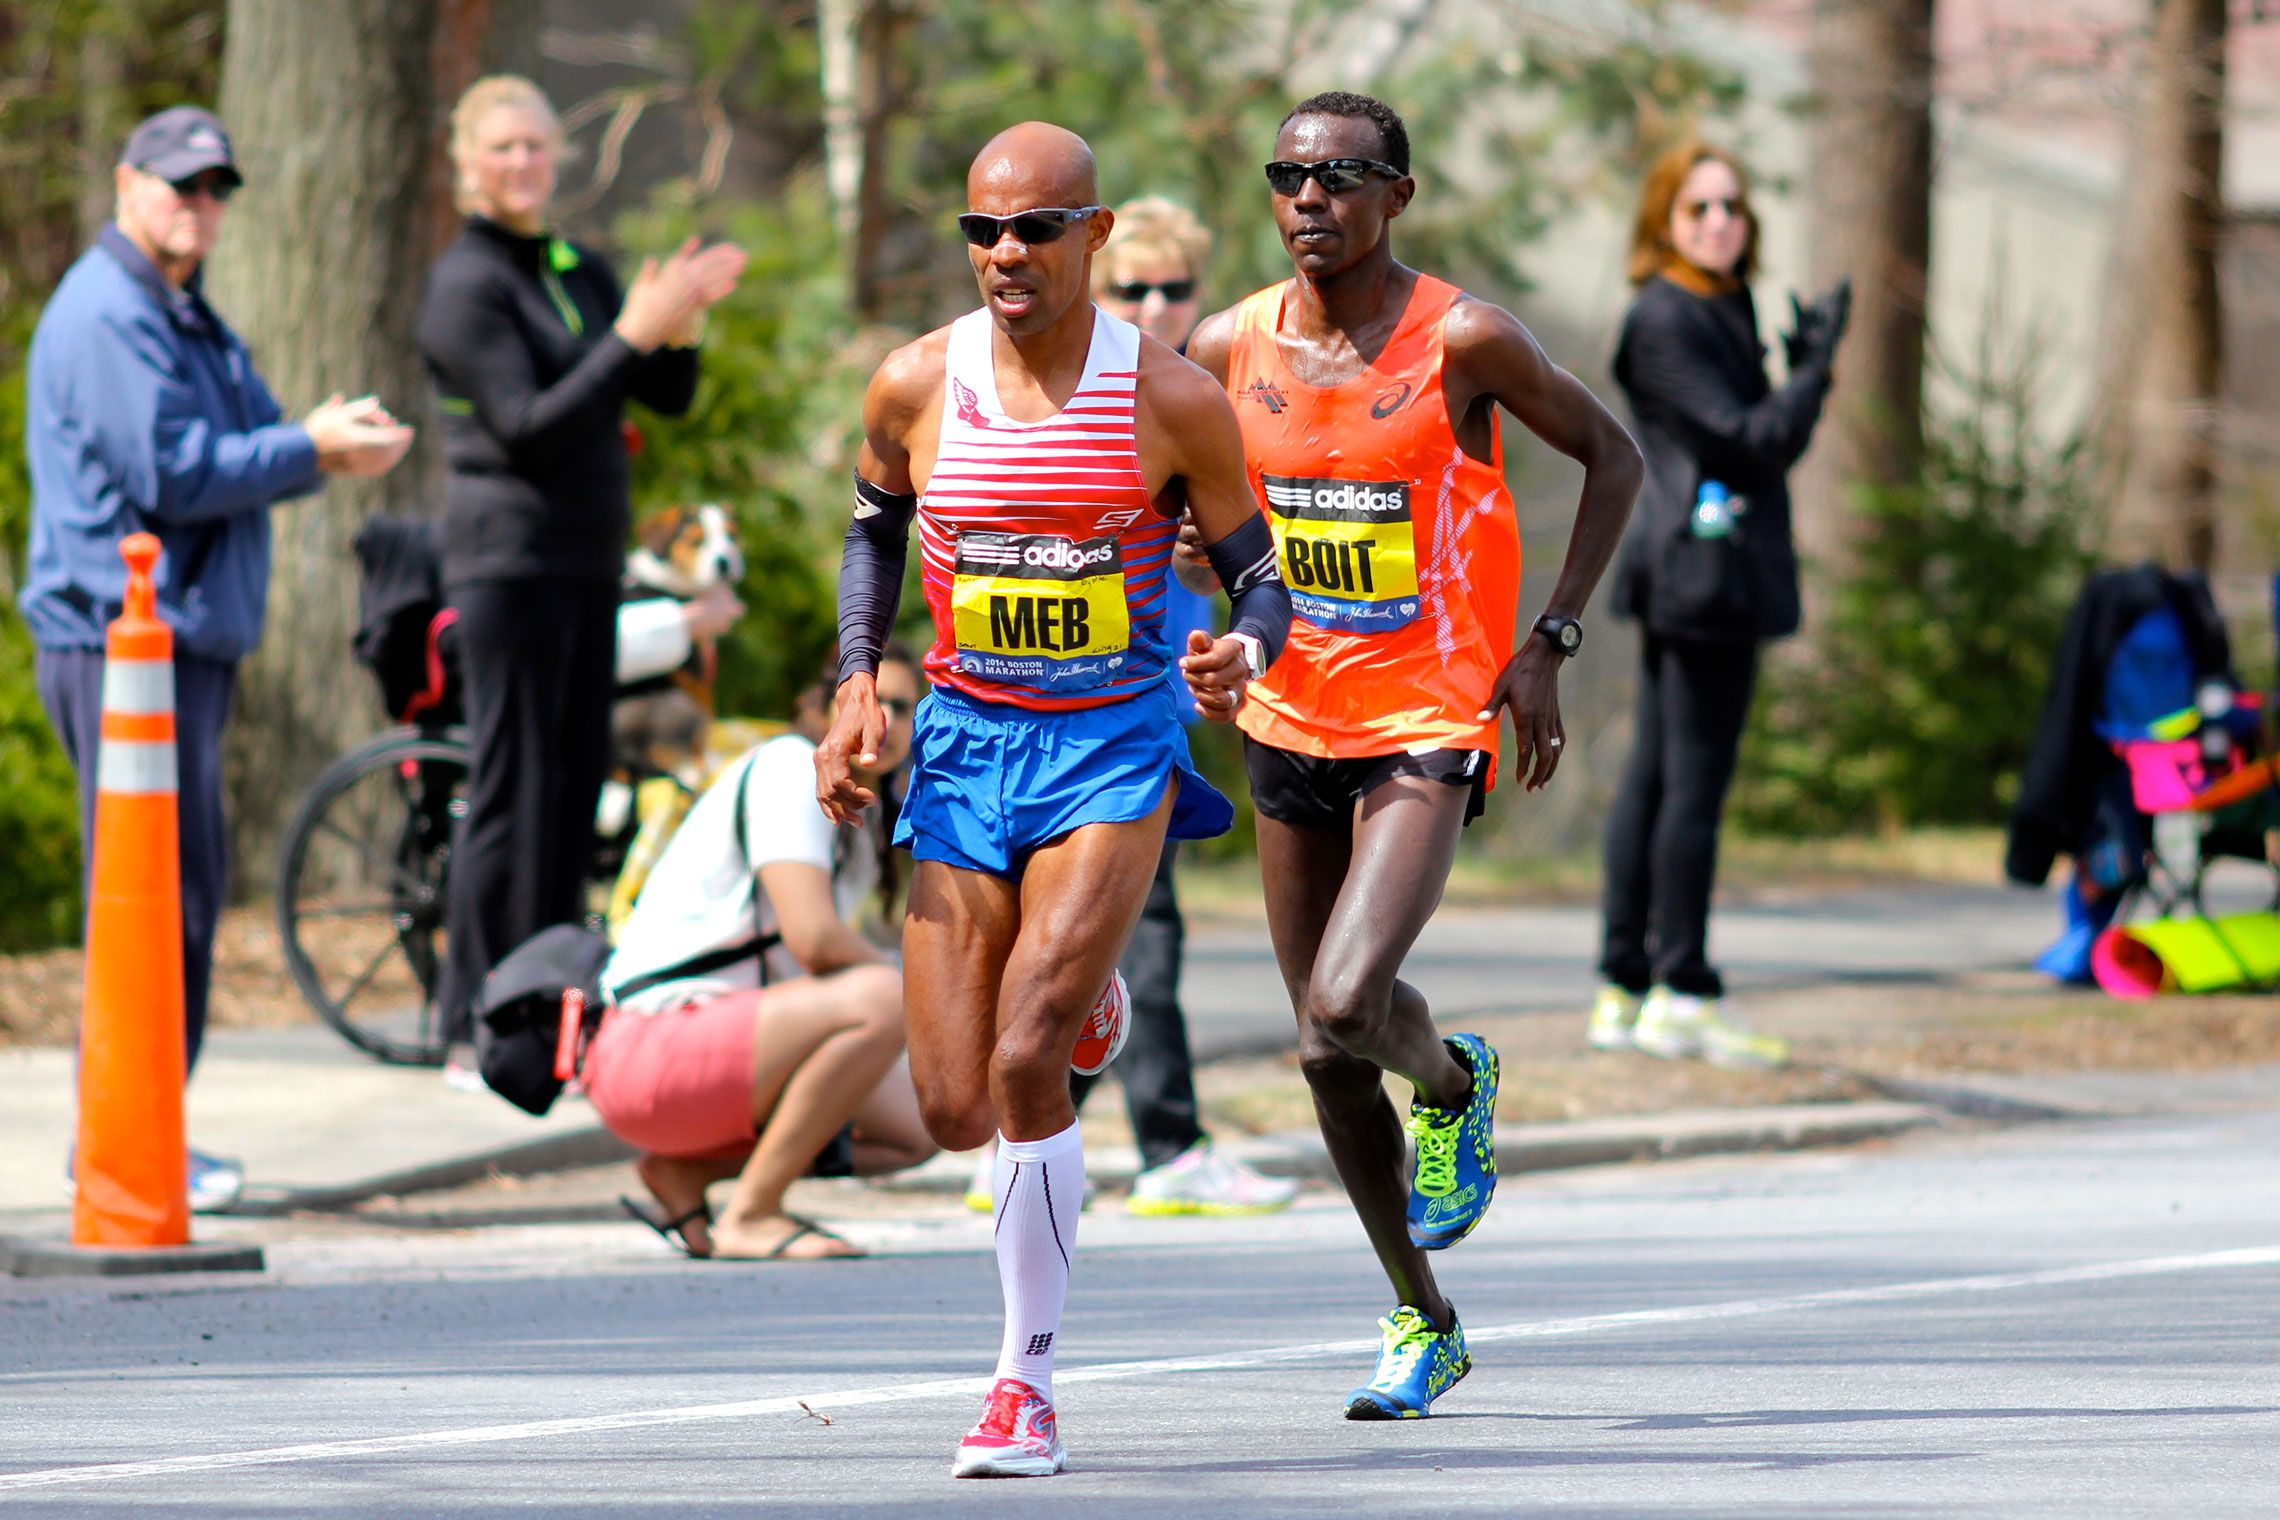 Skechers Makes Strides In Running Shoe Industry Runners World